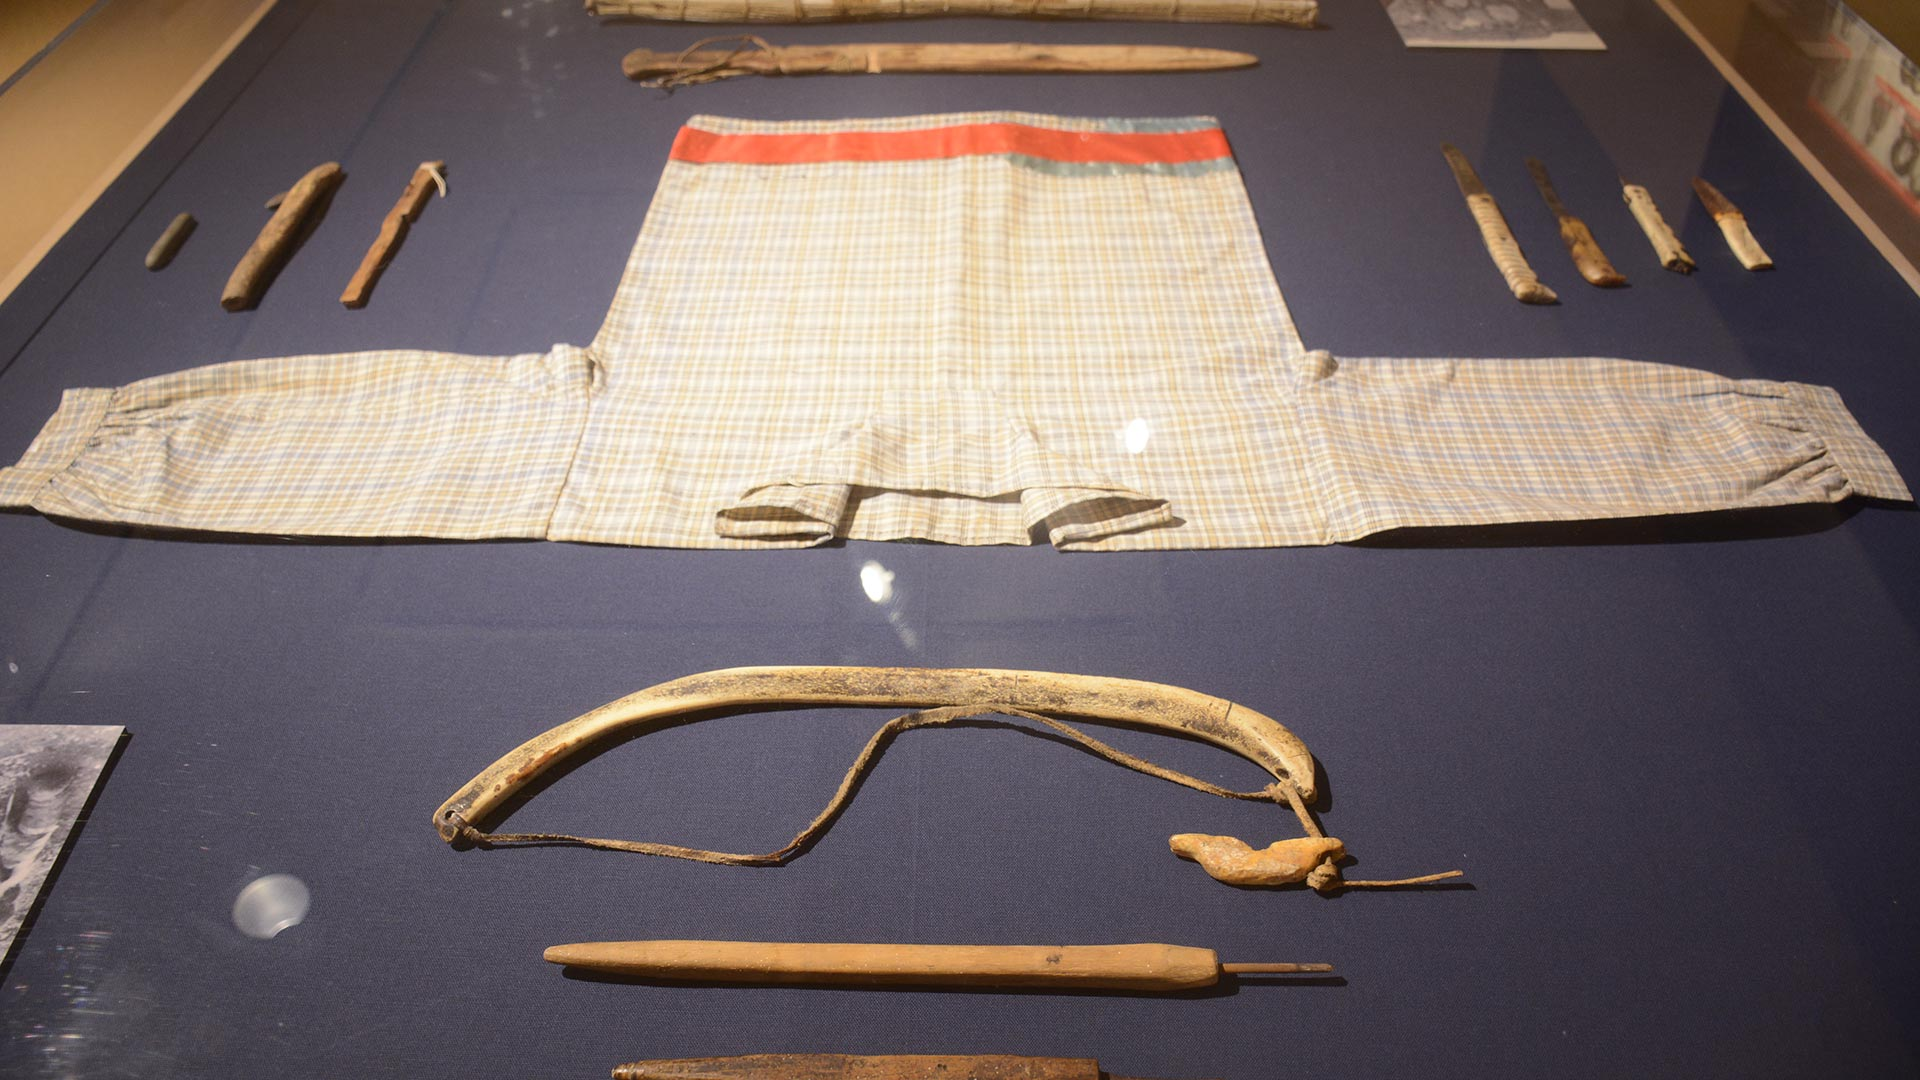 hooded clothes with an orange strip, wooden tools in a display case